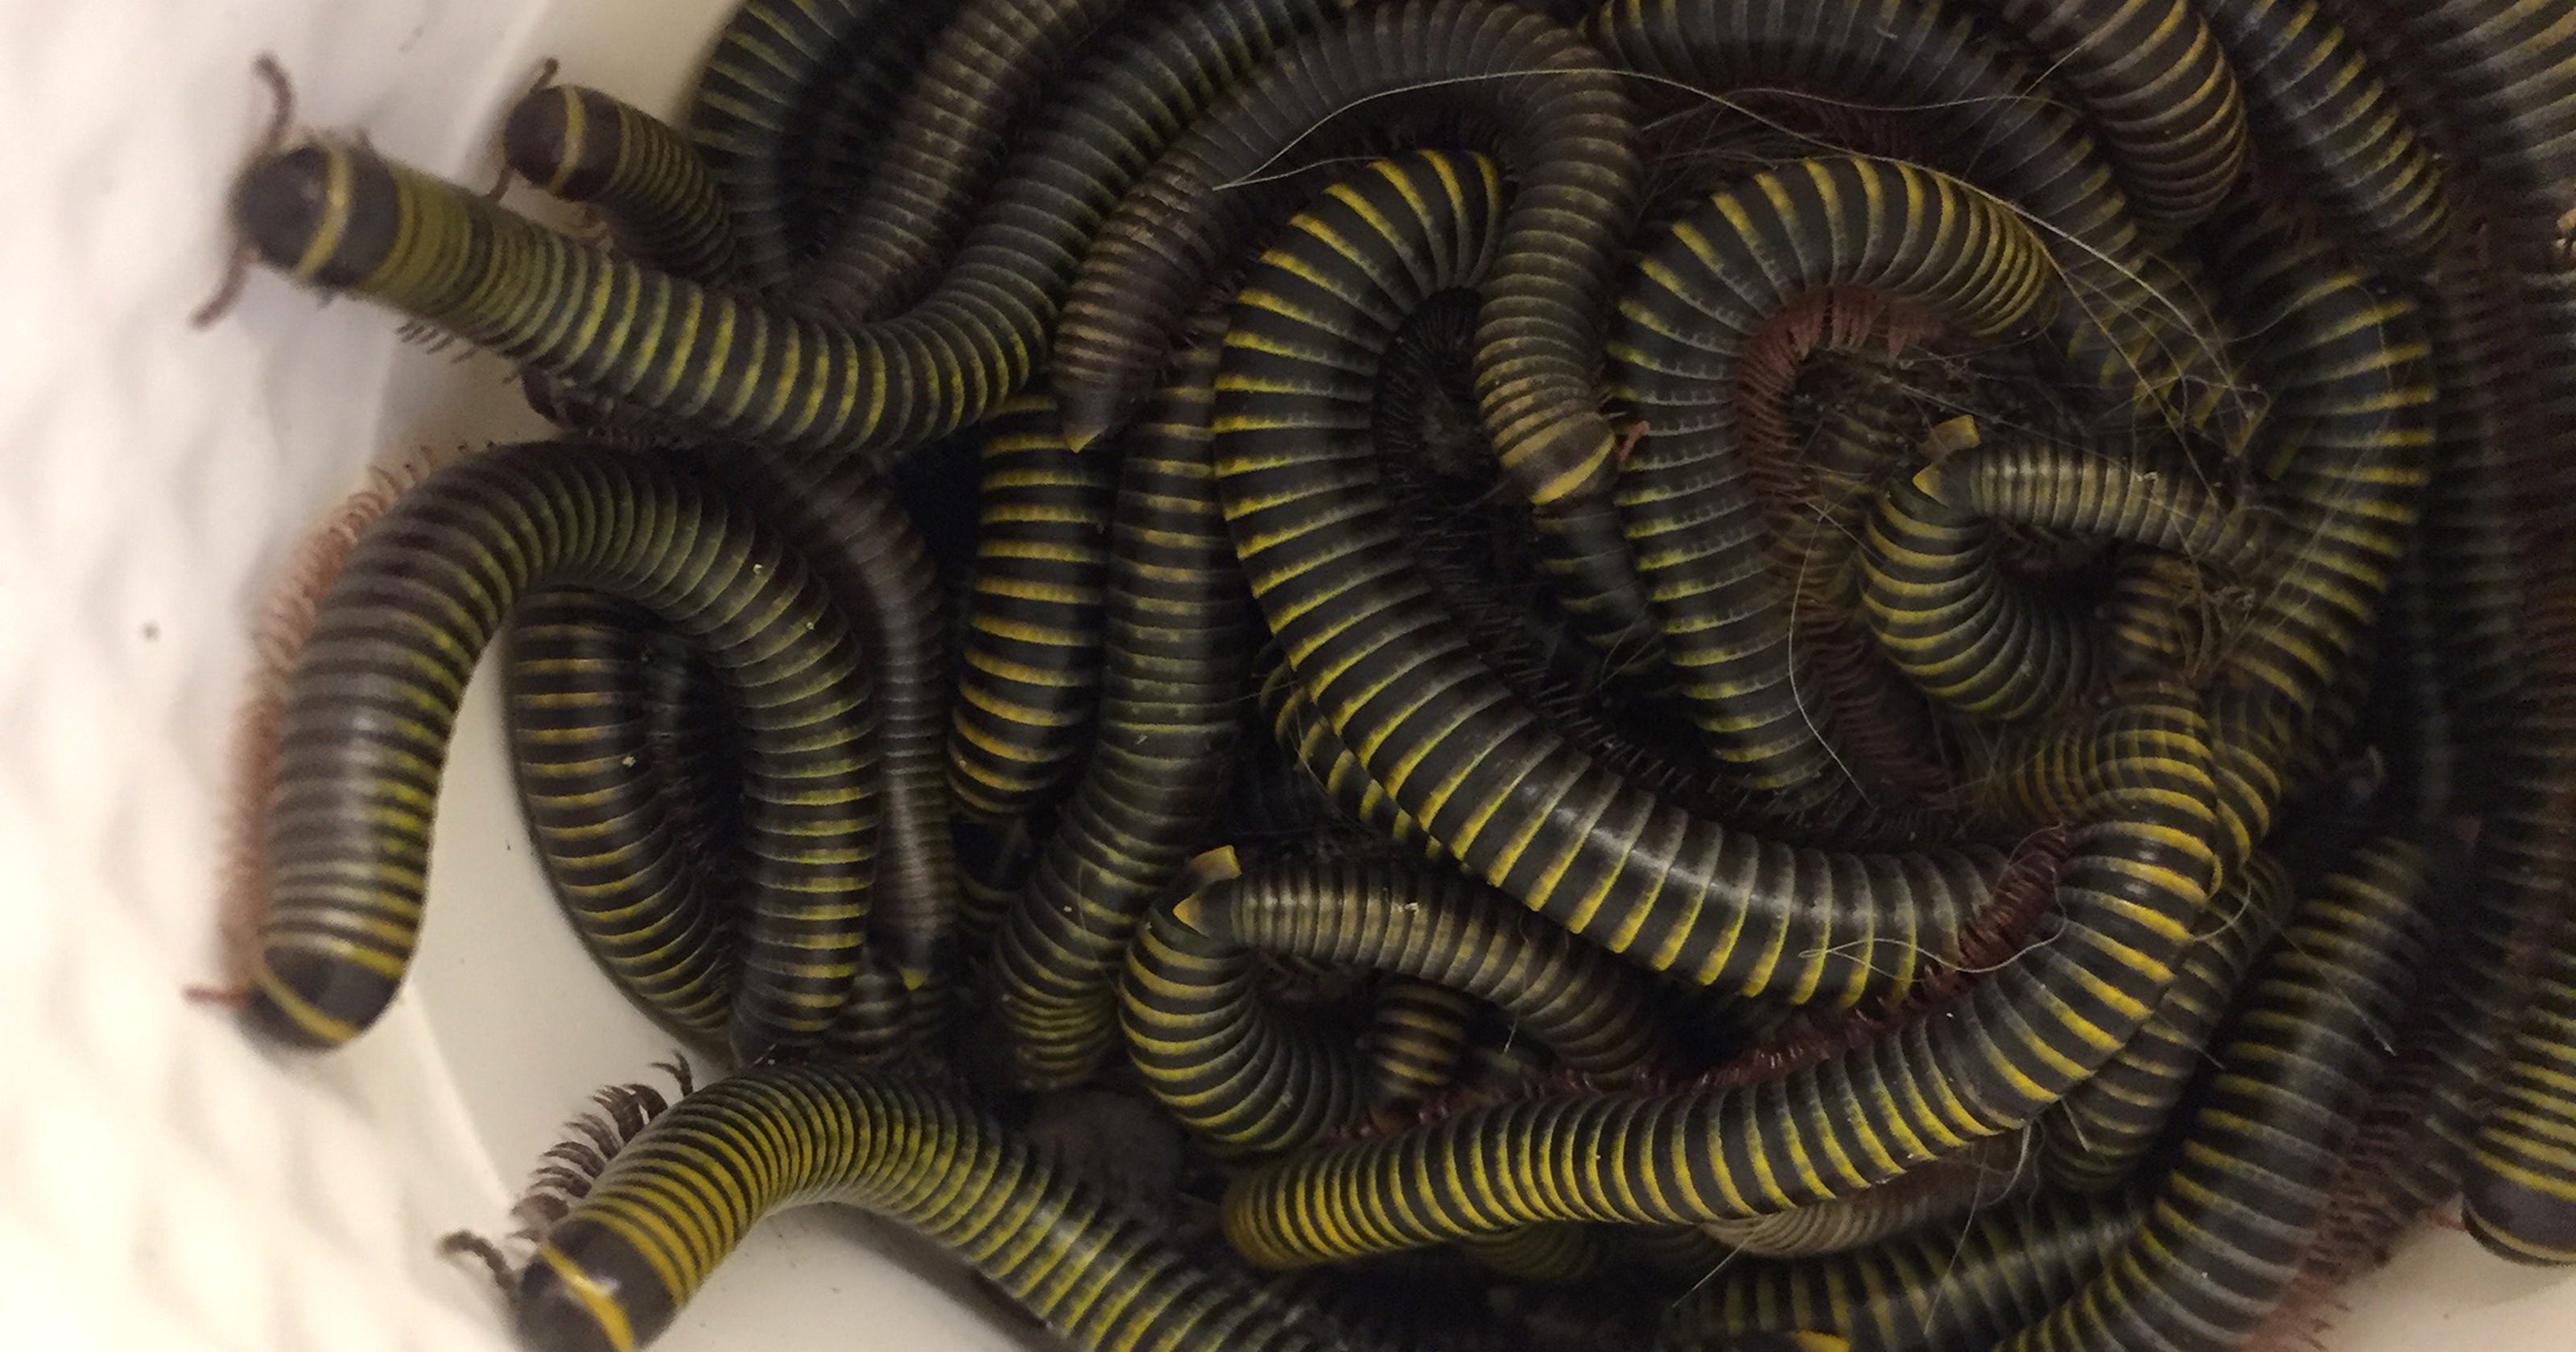 Collier homeowners deal with millipede invasion